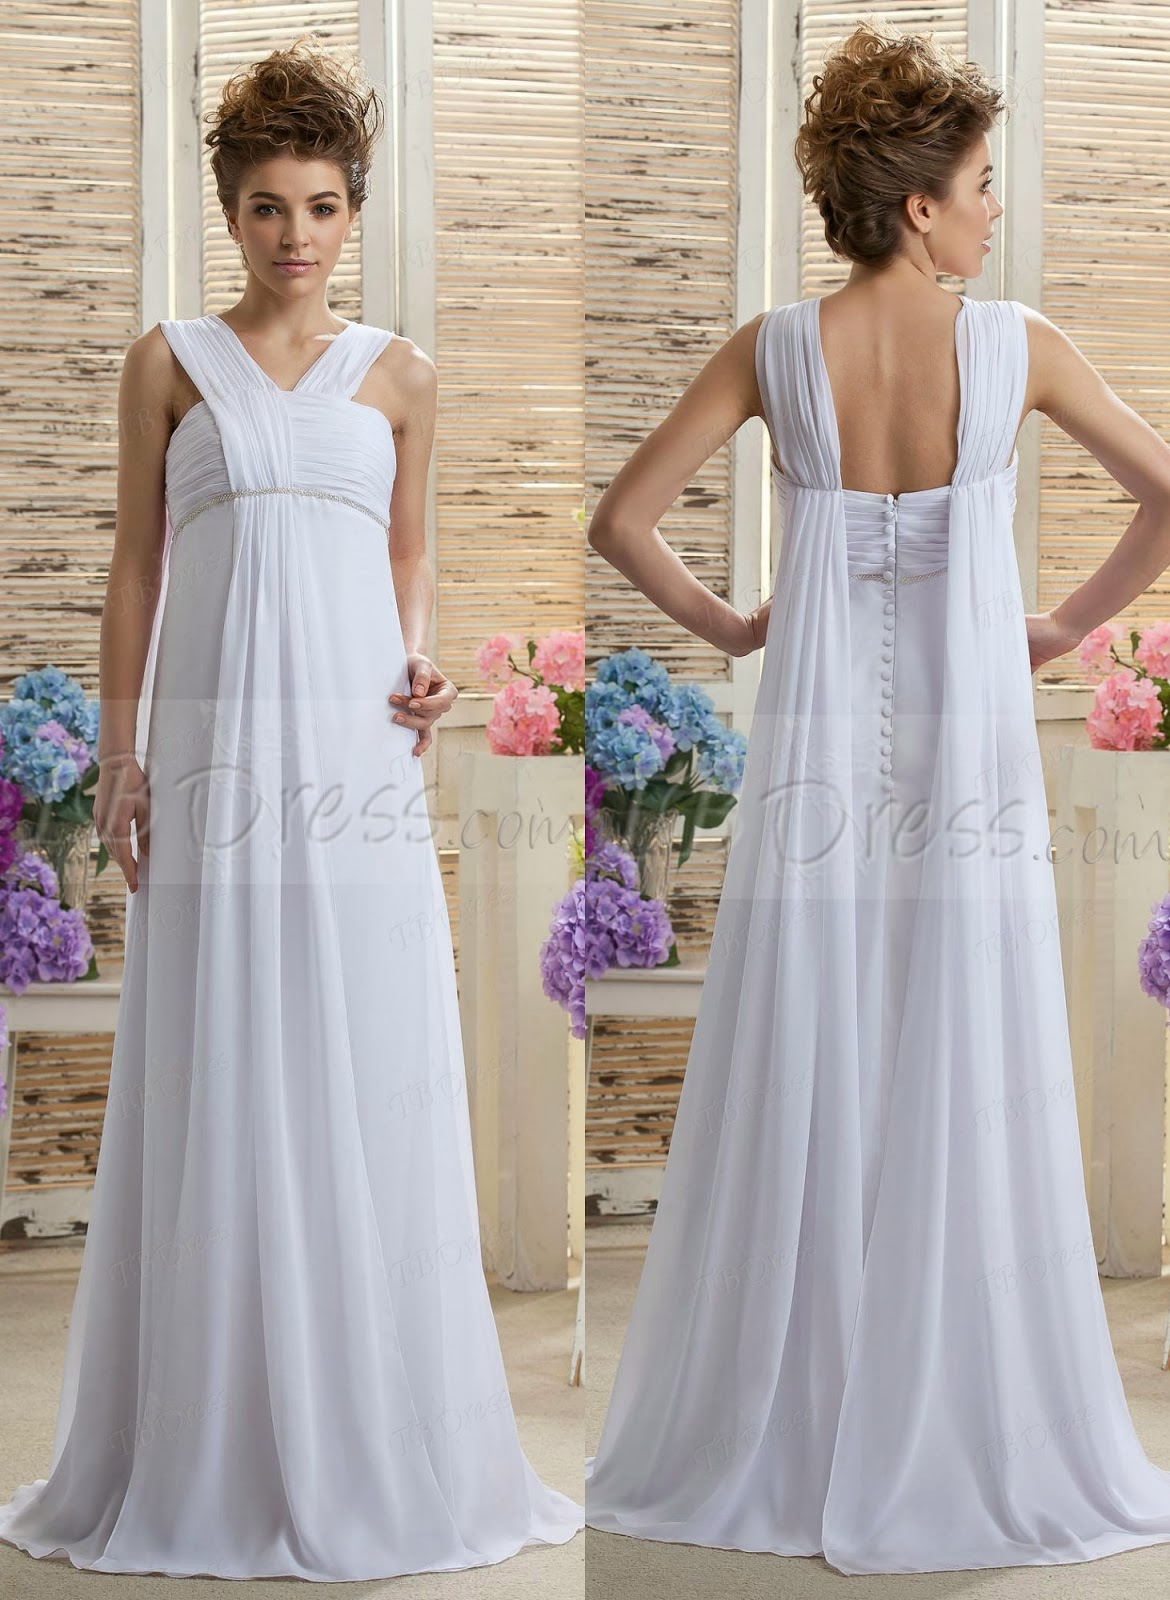 Maternity wedding dresses / LA BOHME